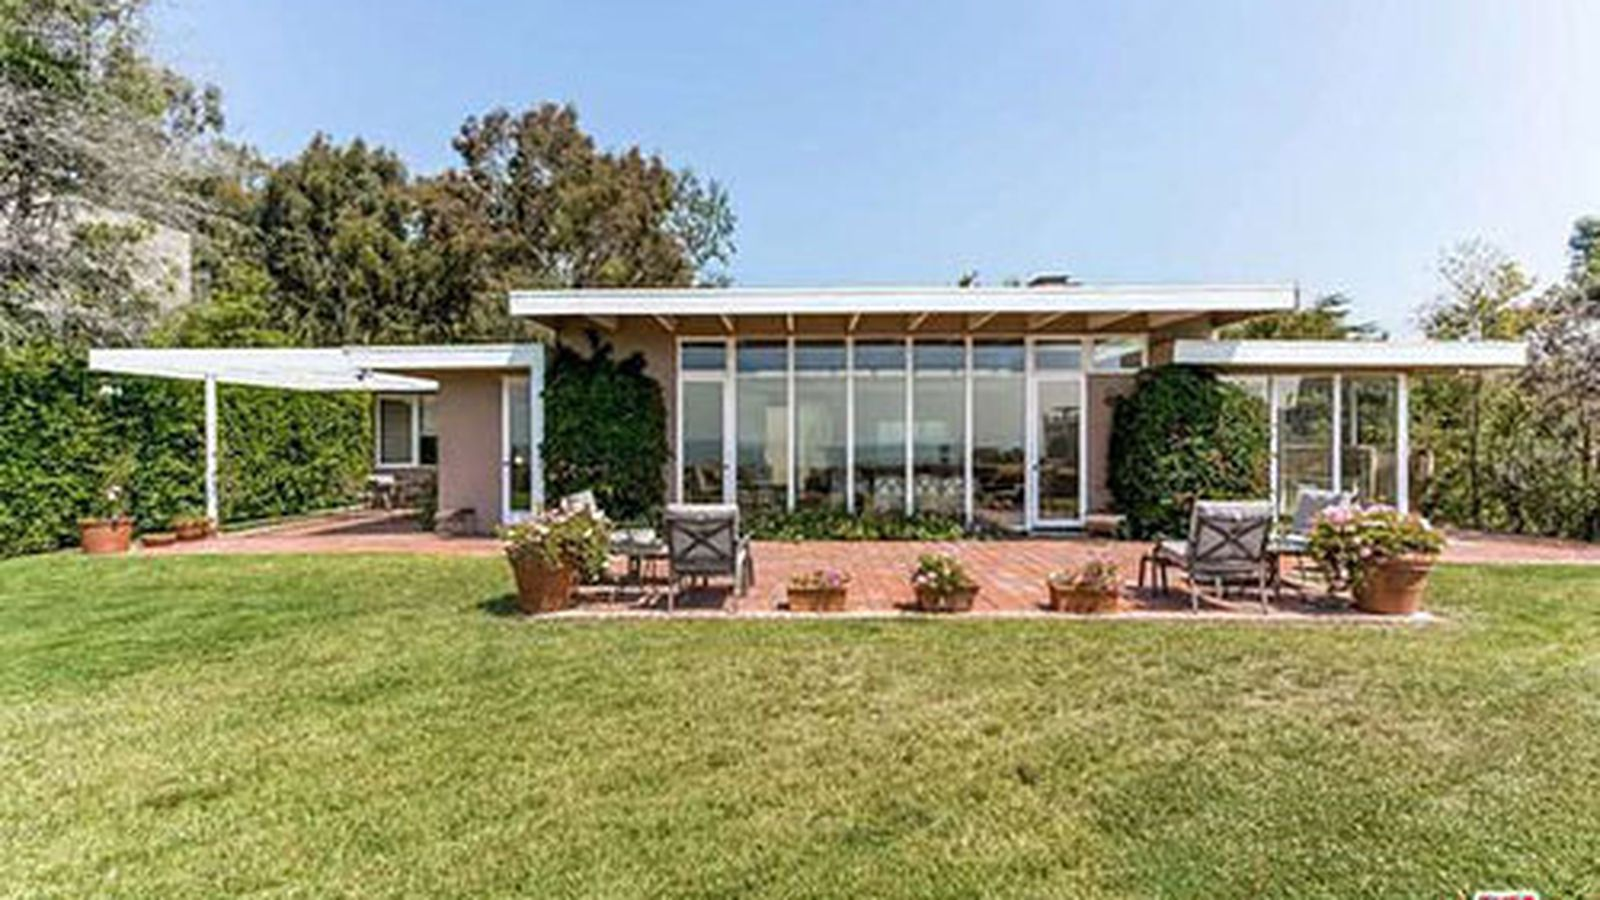 Case Study House 18 On National Register For Sale As